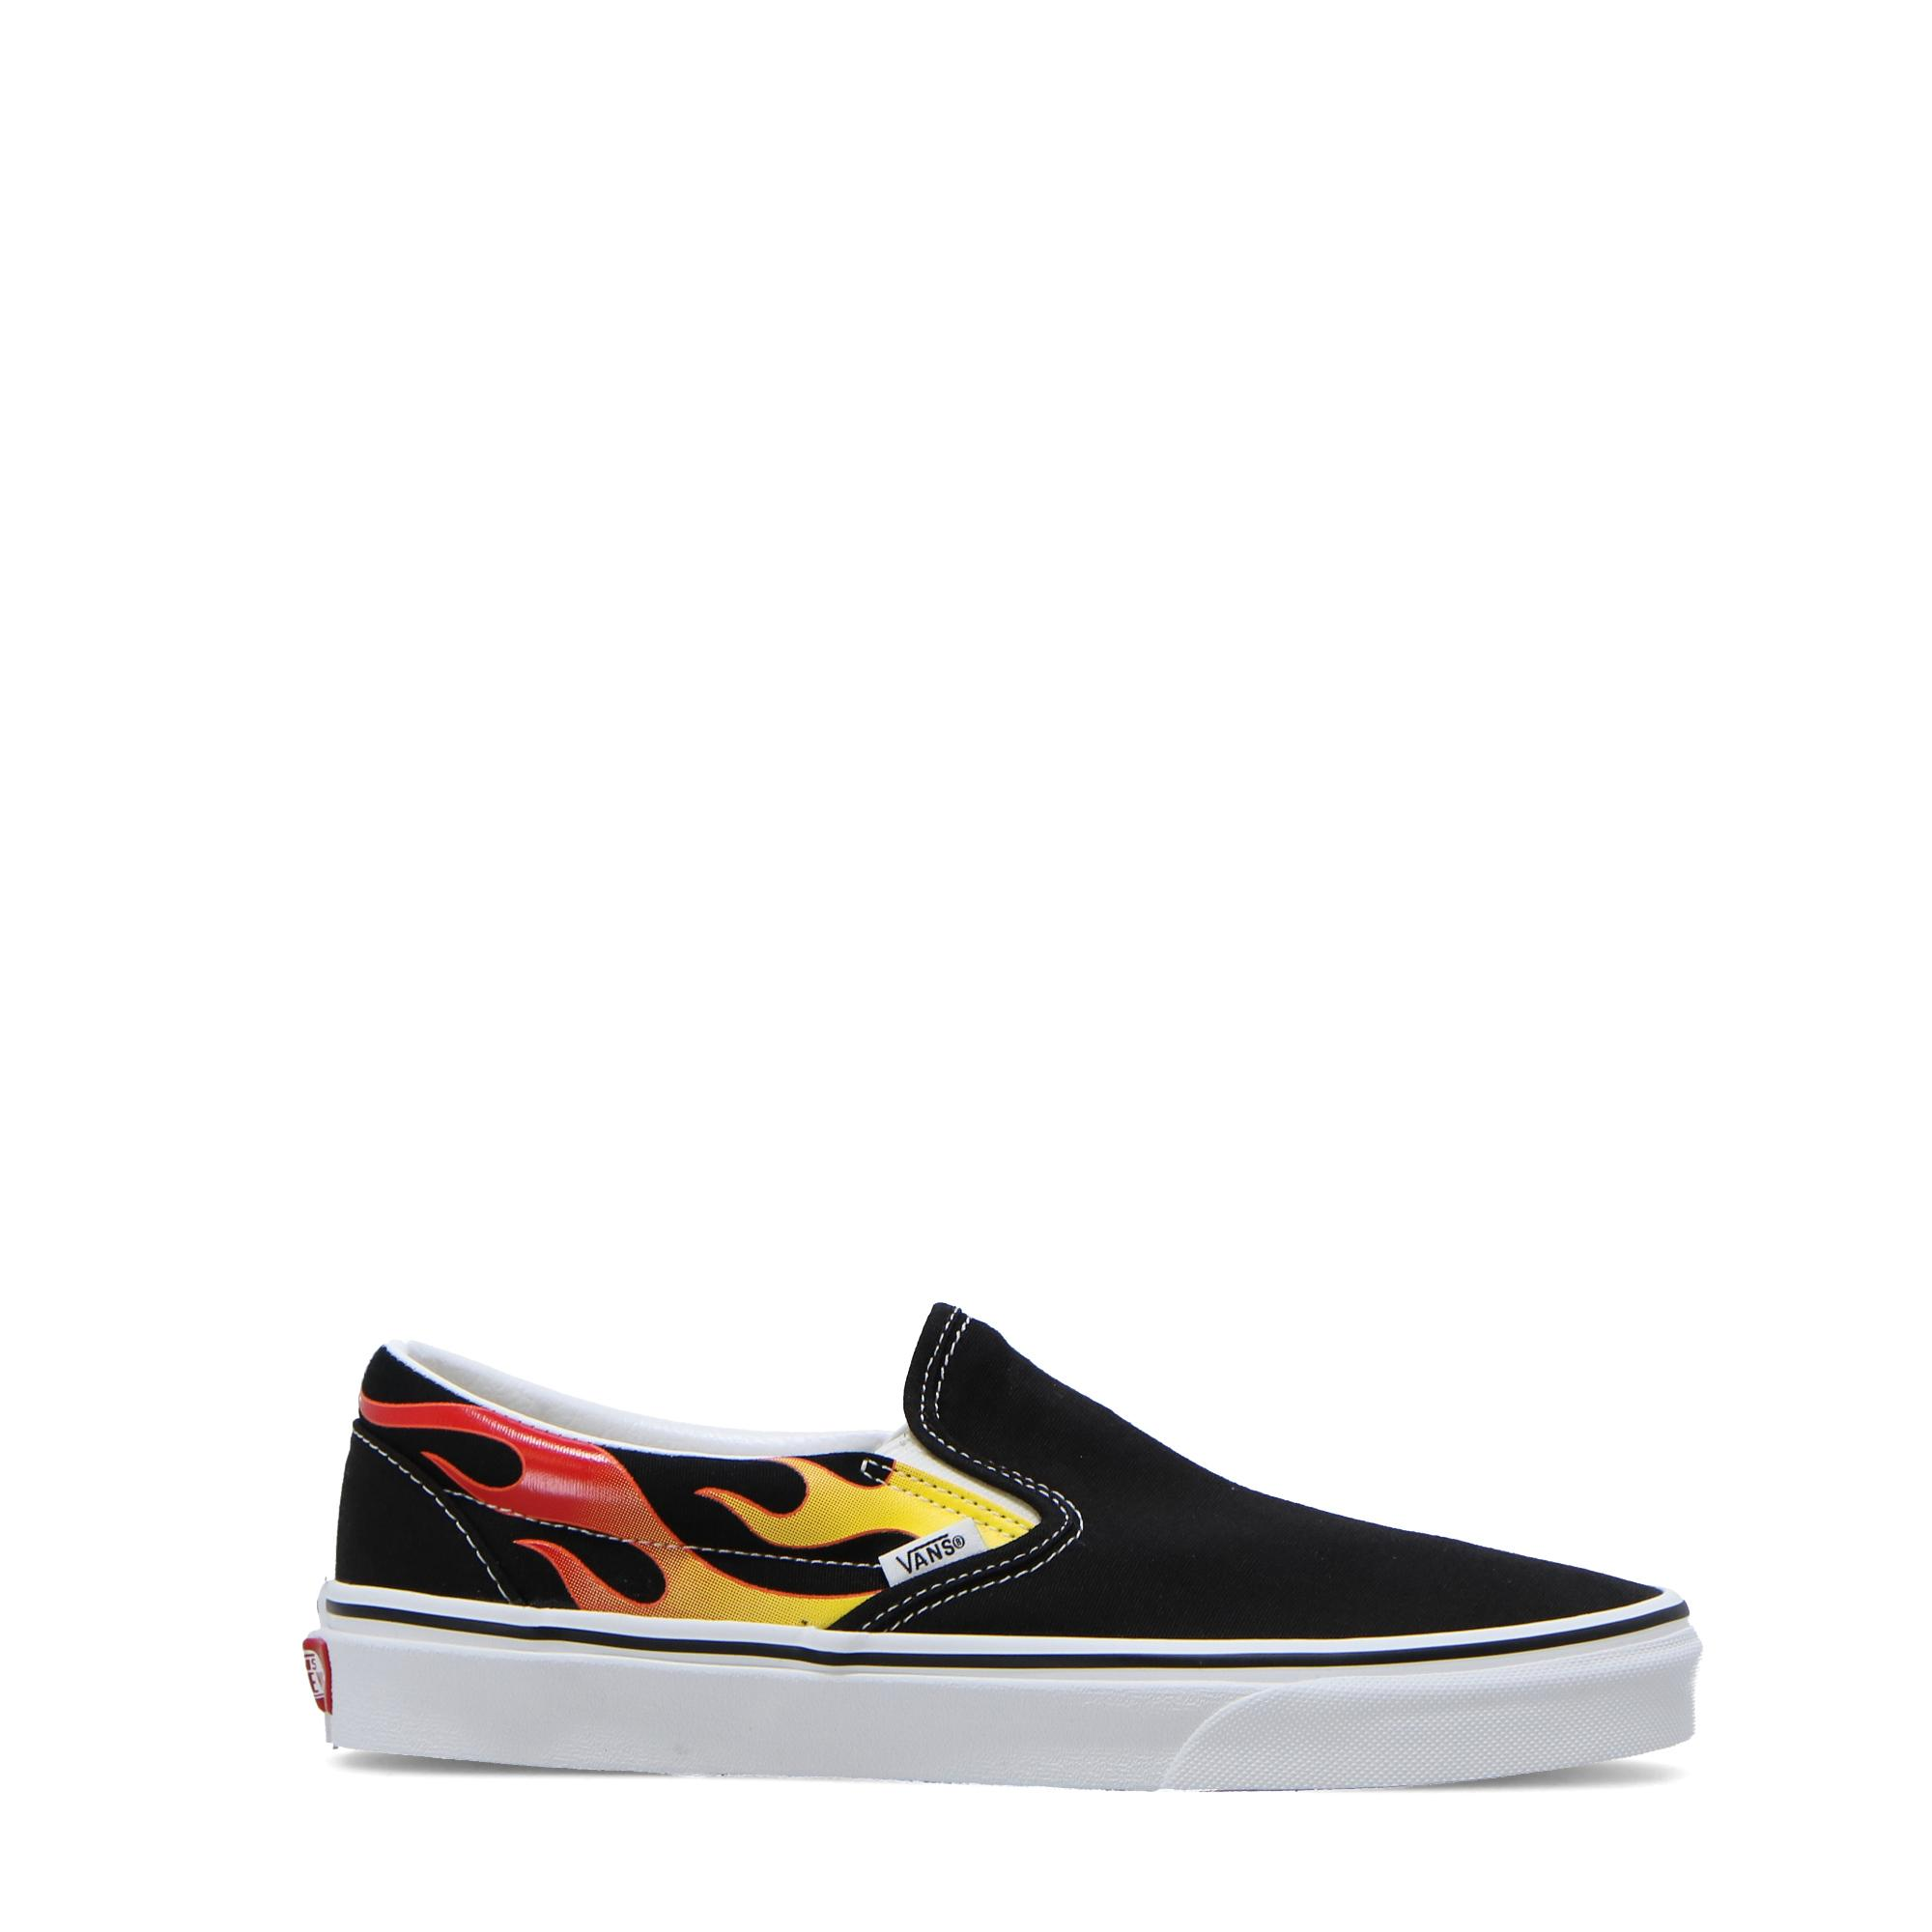 Vans Ua Classic Slip-on Flame black black true white